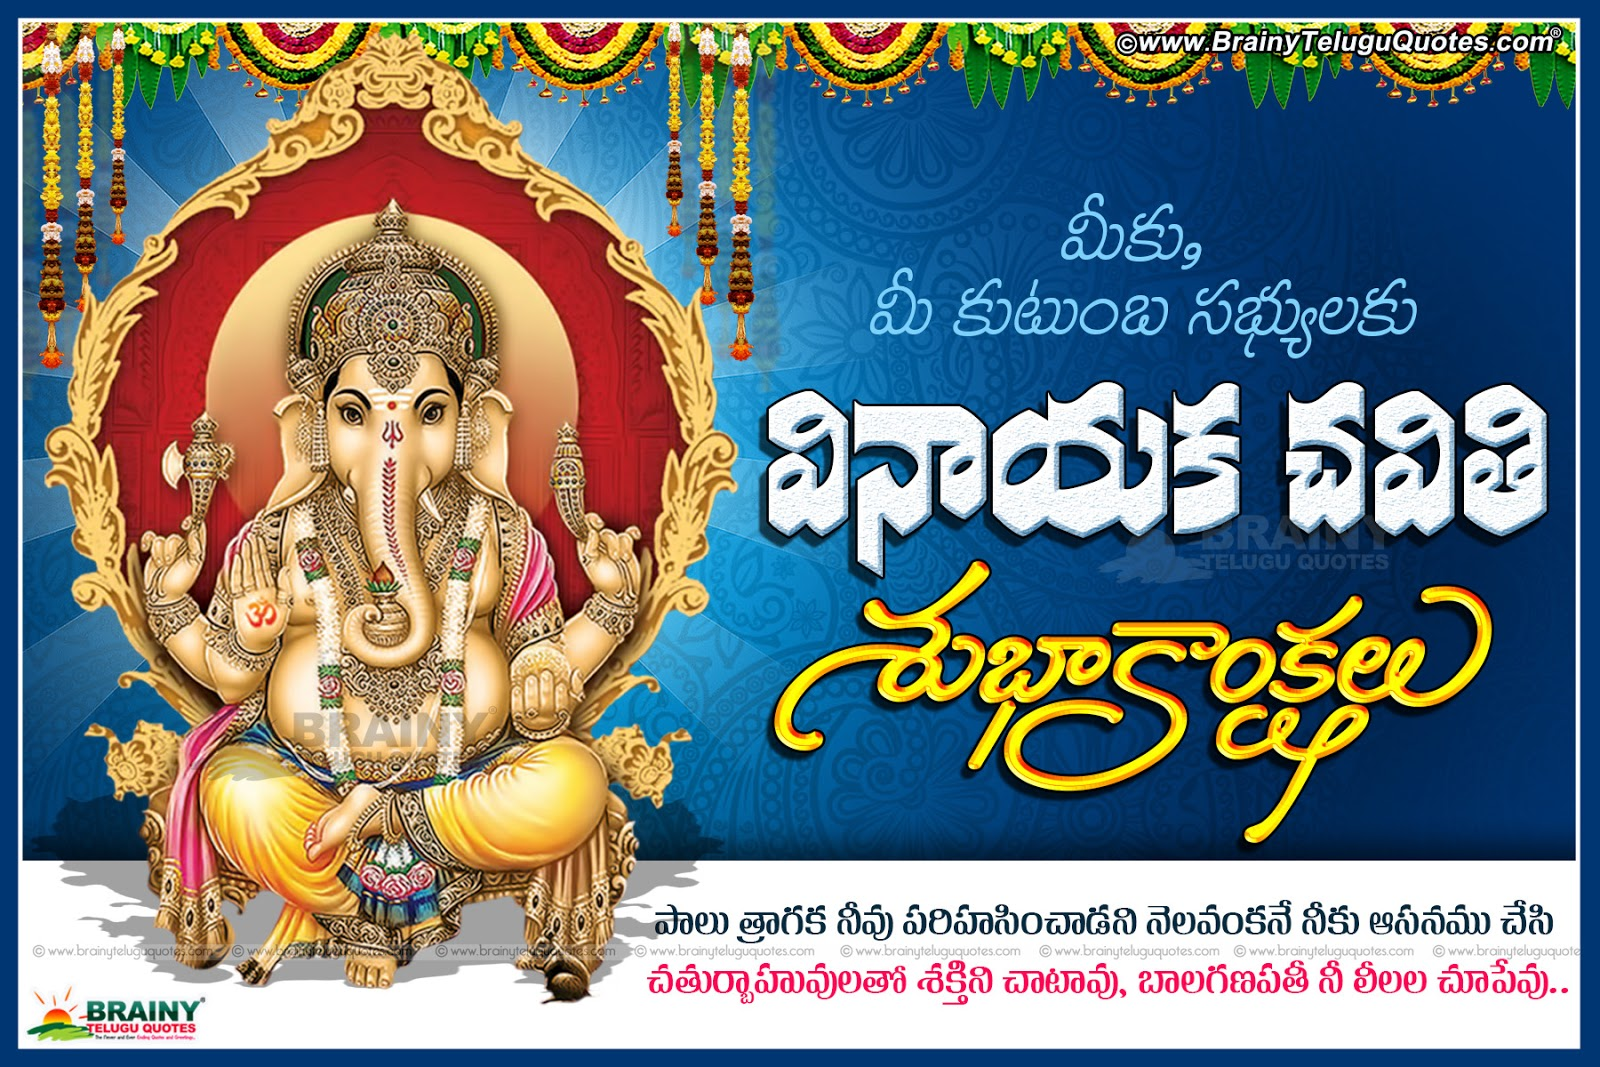 Ganesh chaturthi messages 2016 in telugu quotes wallpapers here is happy ganesh chaturthi 2016 wishes quotes in teluguganesh chaturthi greetings wallpapers 2016 m4hsunfo